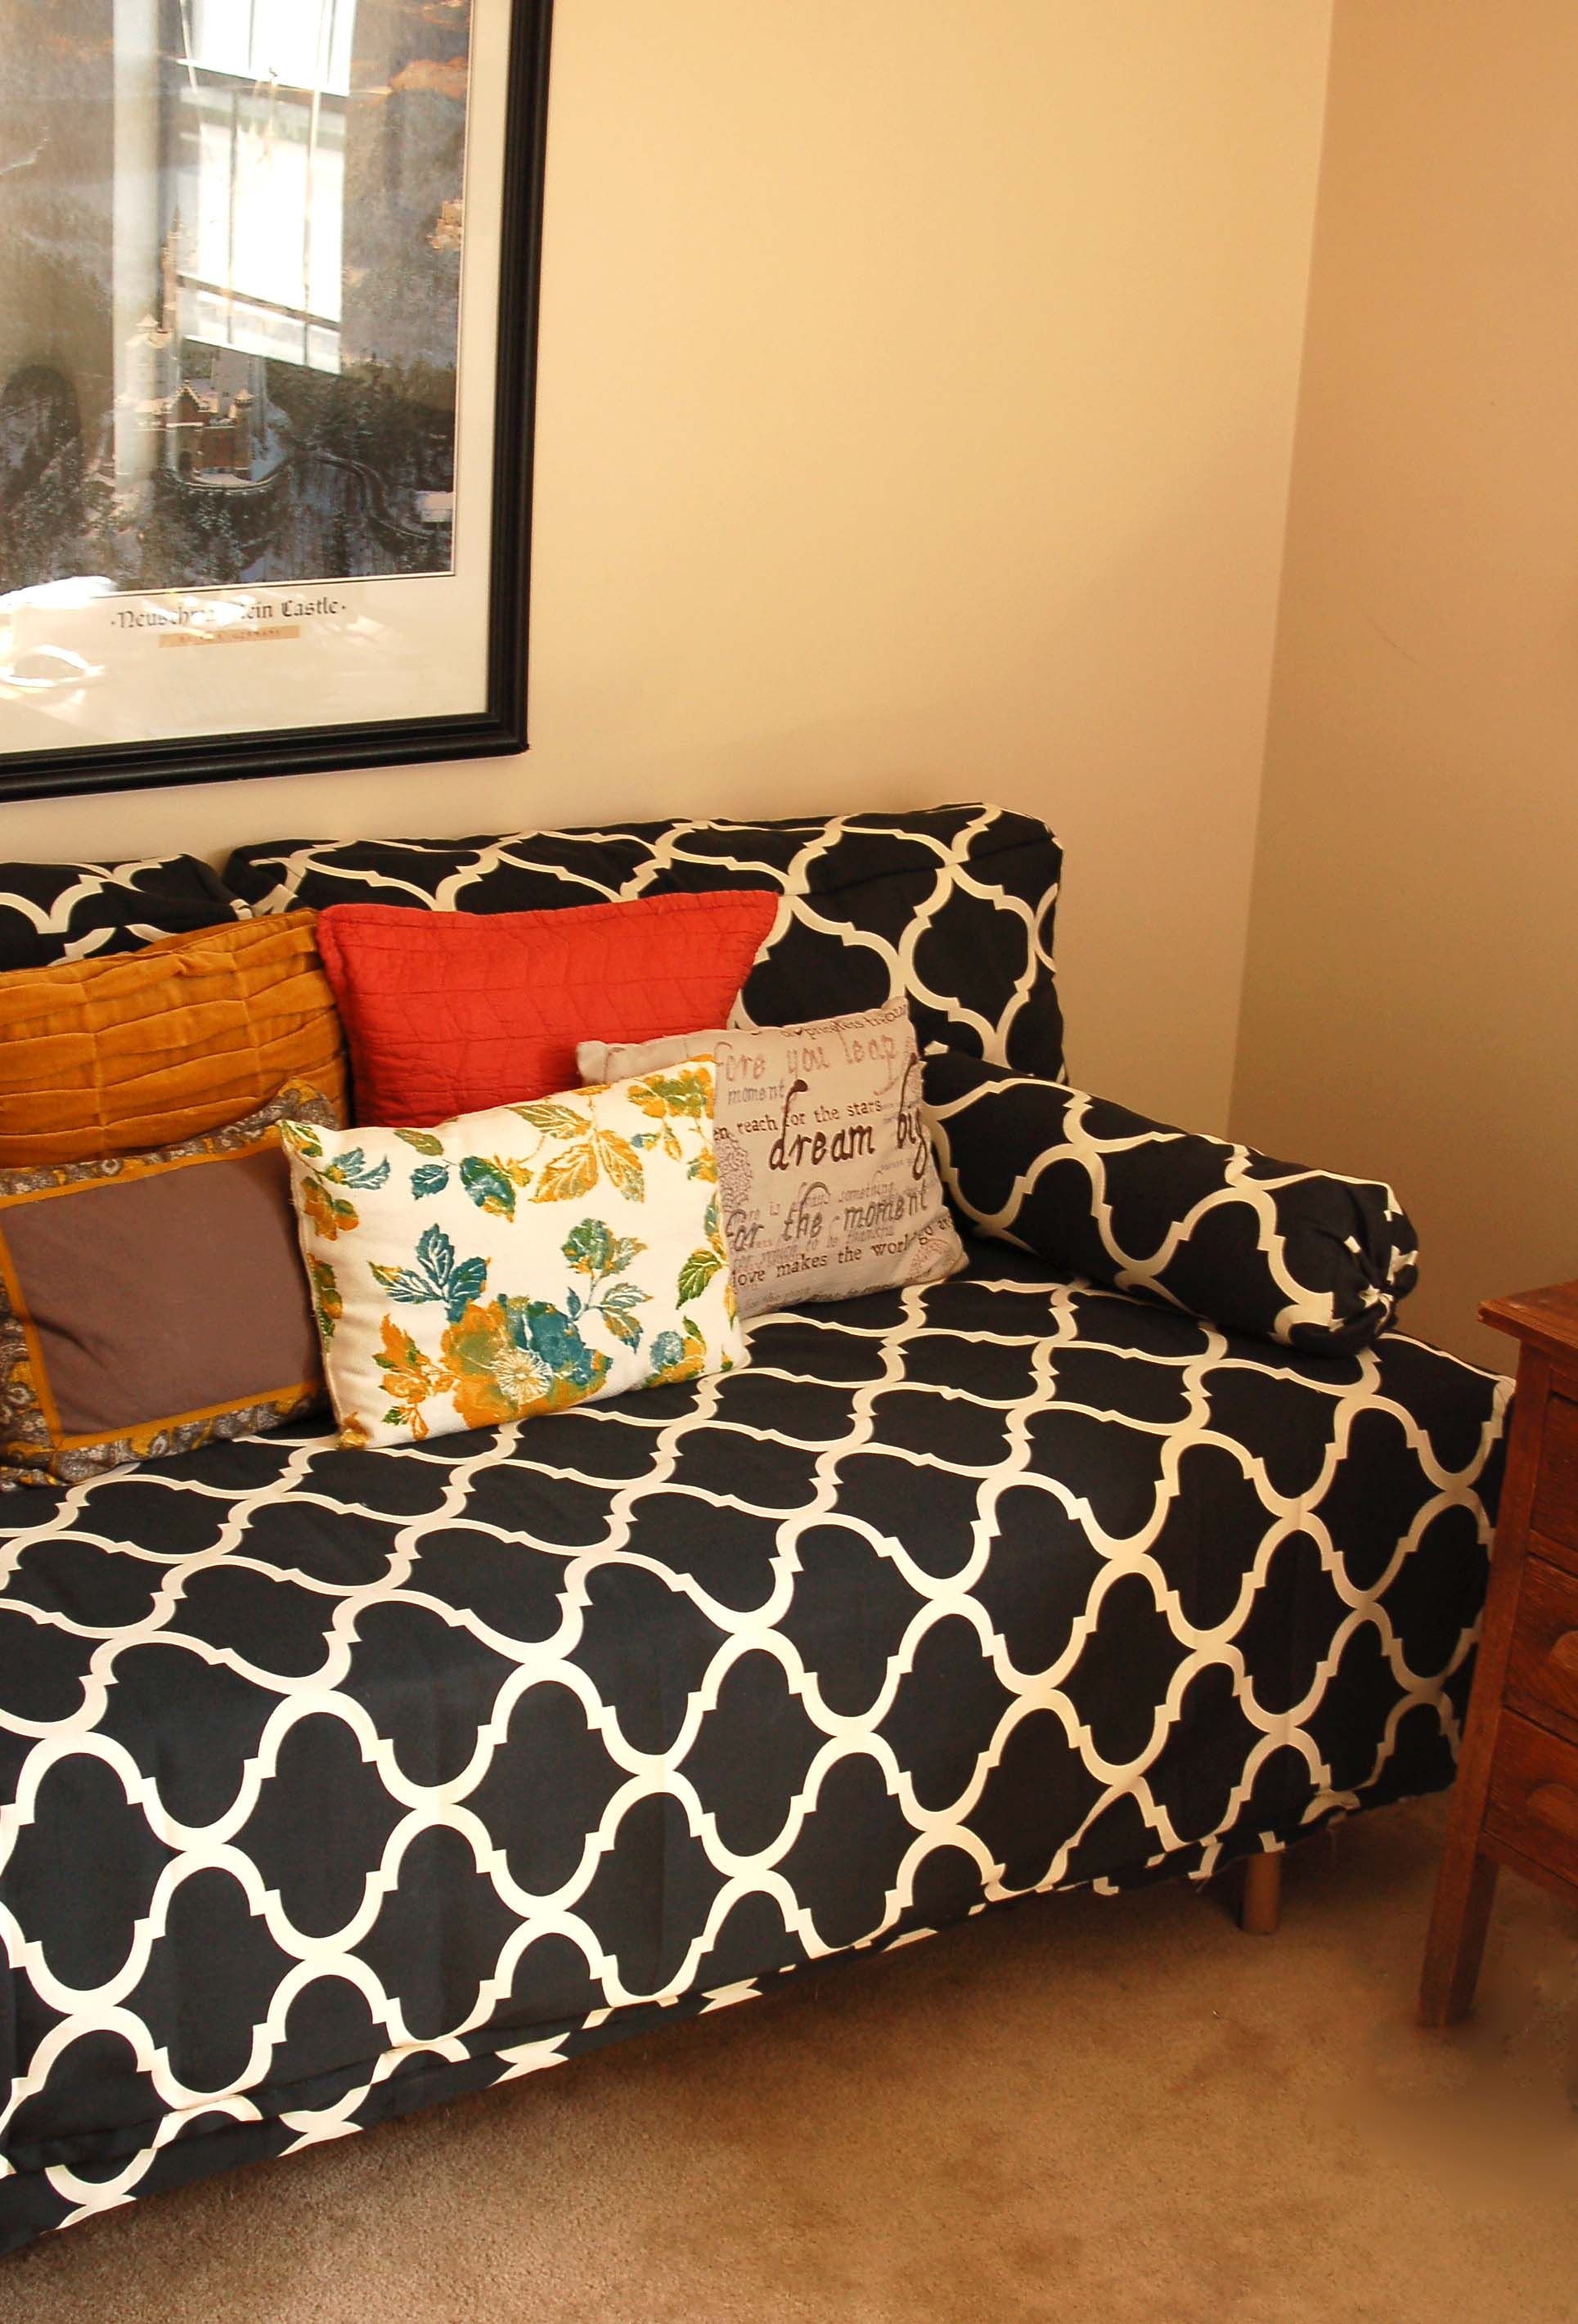 Diy Wall Bed Sofa Foam Mattress Twin Made To Look Like A Couch Do This By Making